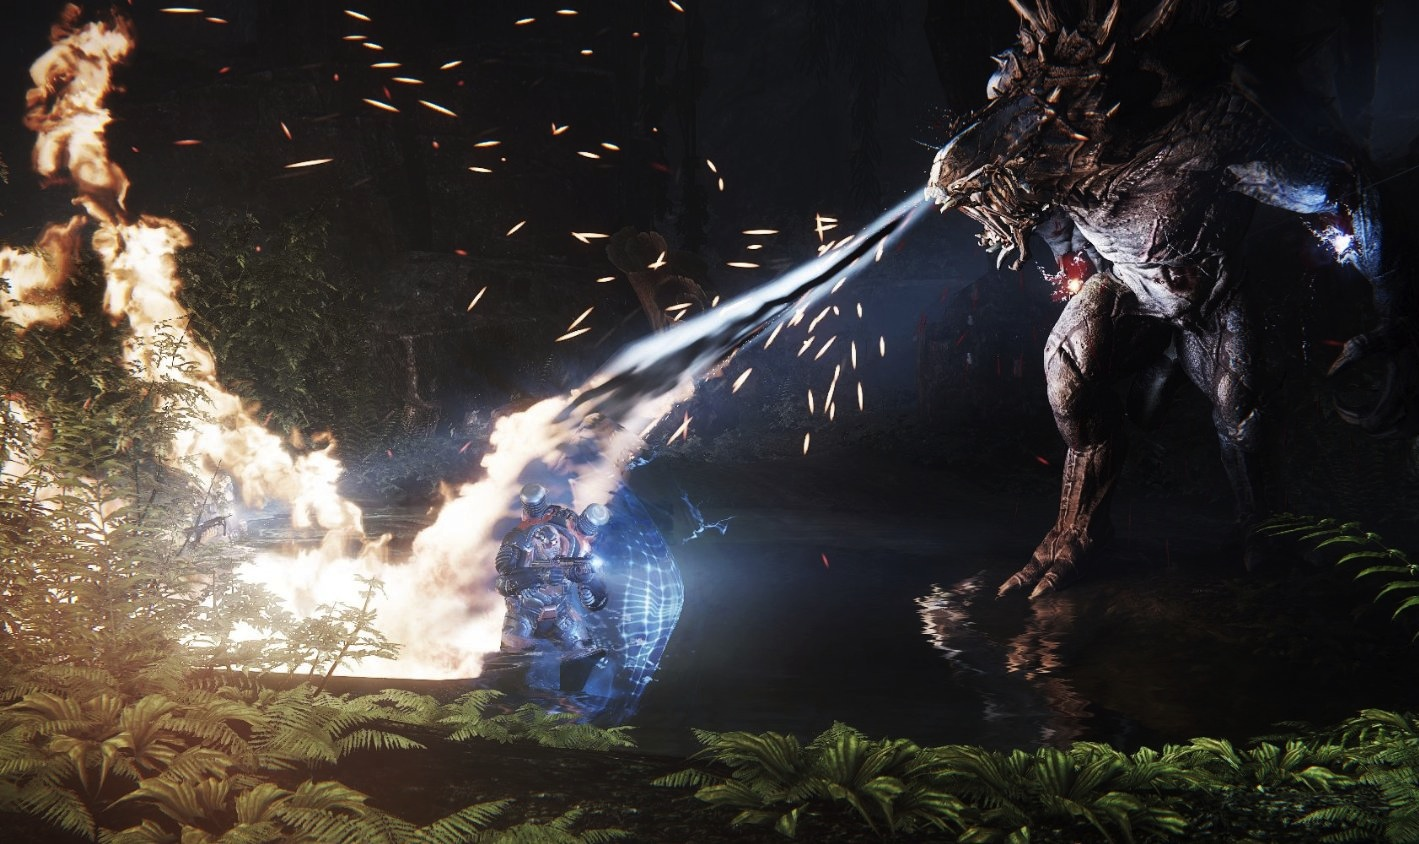 Evolve's Big Alpha releases Goliath into the wild for the first time